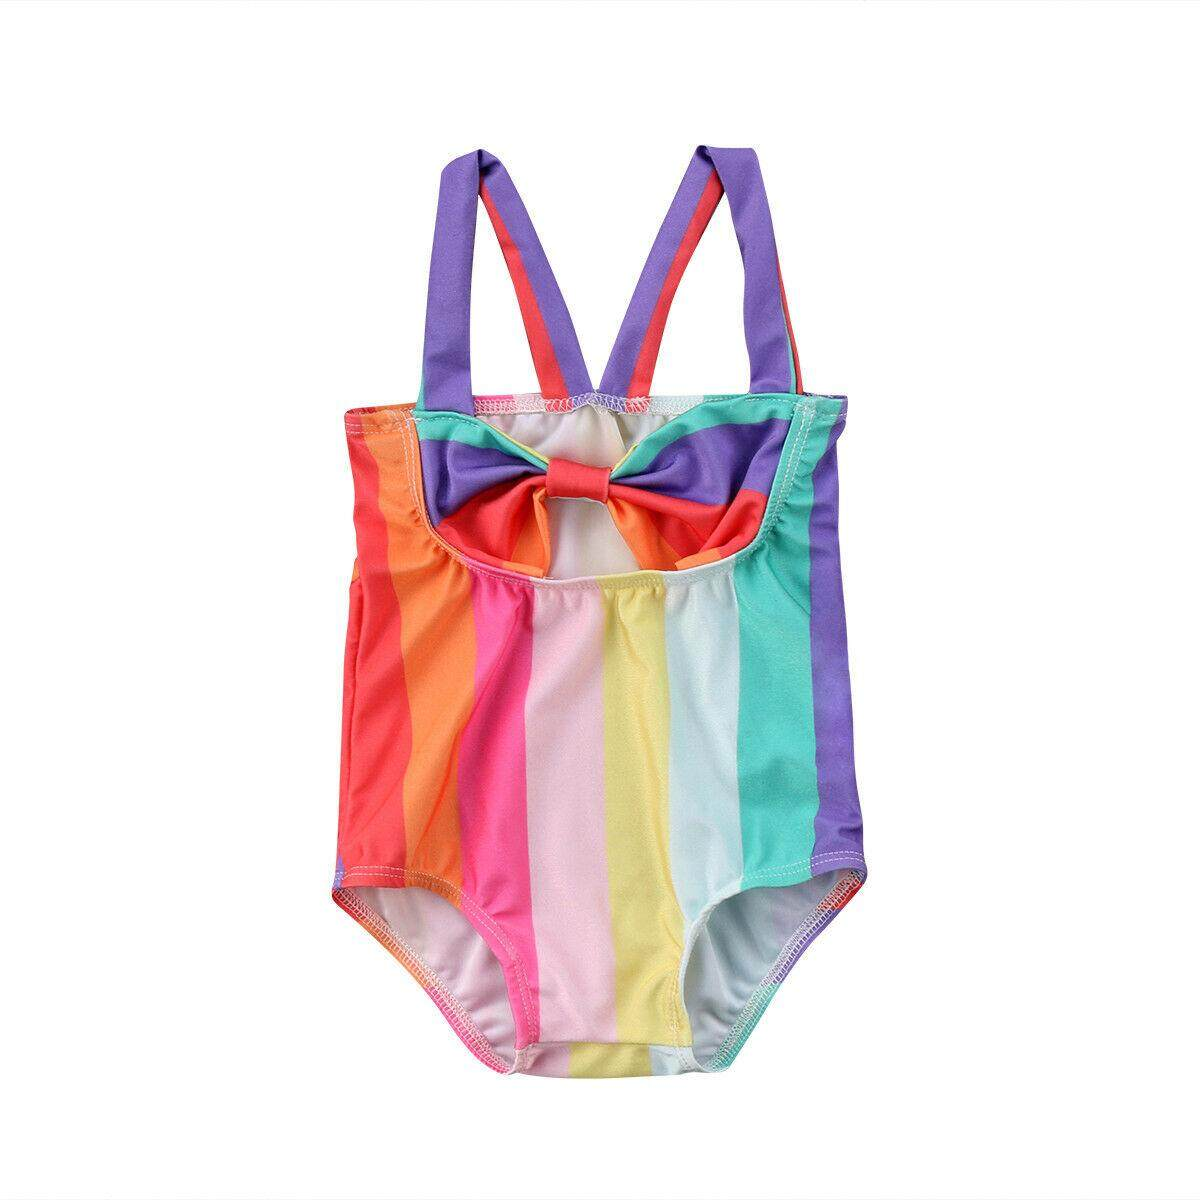 fbfdd4a81e Rainbow Toddler Kids Baby Girl Swimsuit Bikini Swimwear Bathing Suit  Beachwear